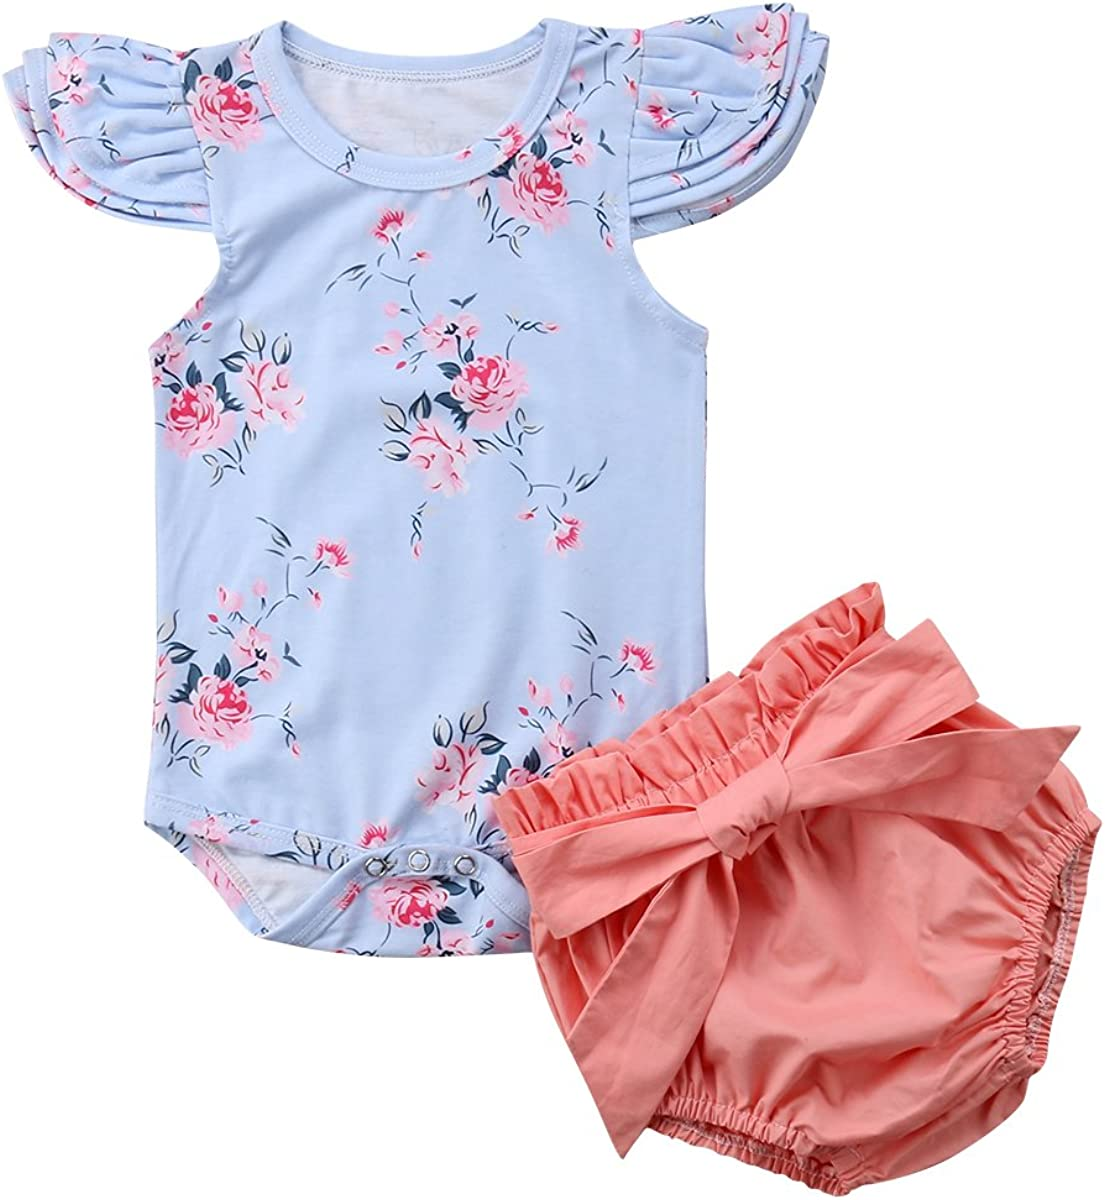 Fartido 3PCS Infant Baby Girls Letter Floral Romper Shorts Outfits Clothes